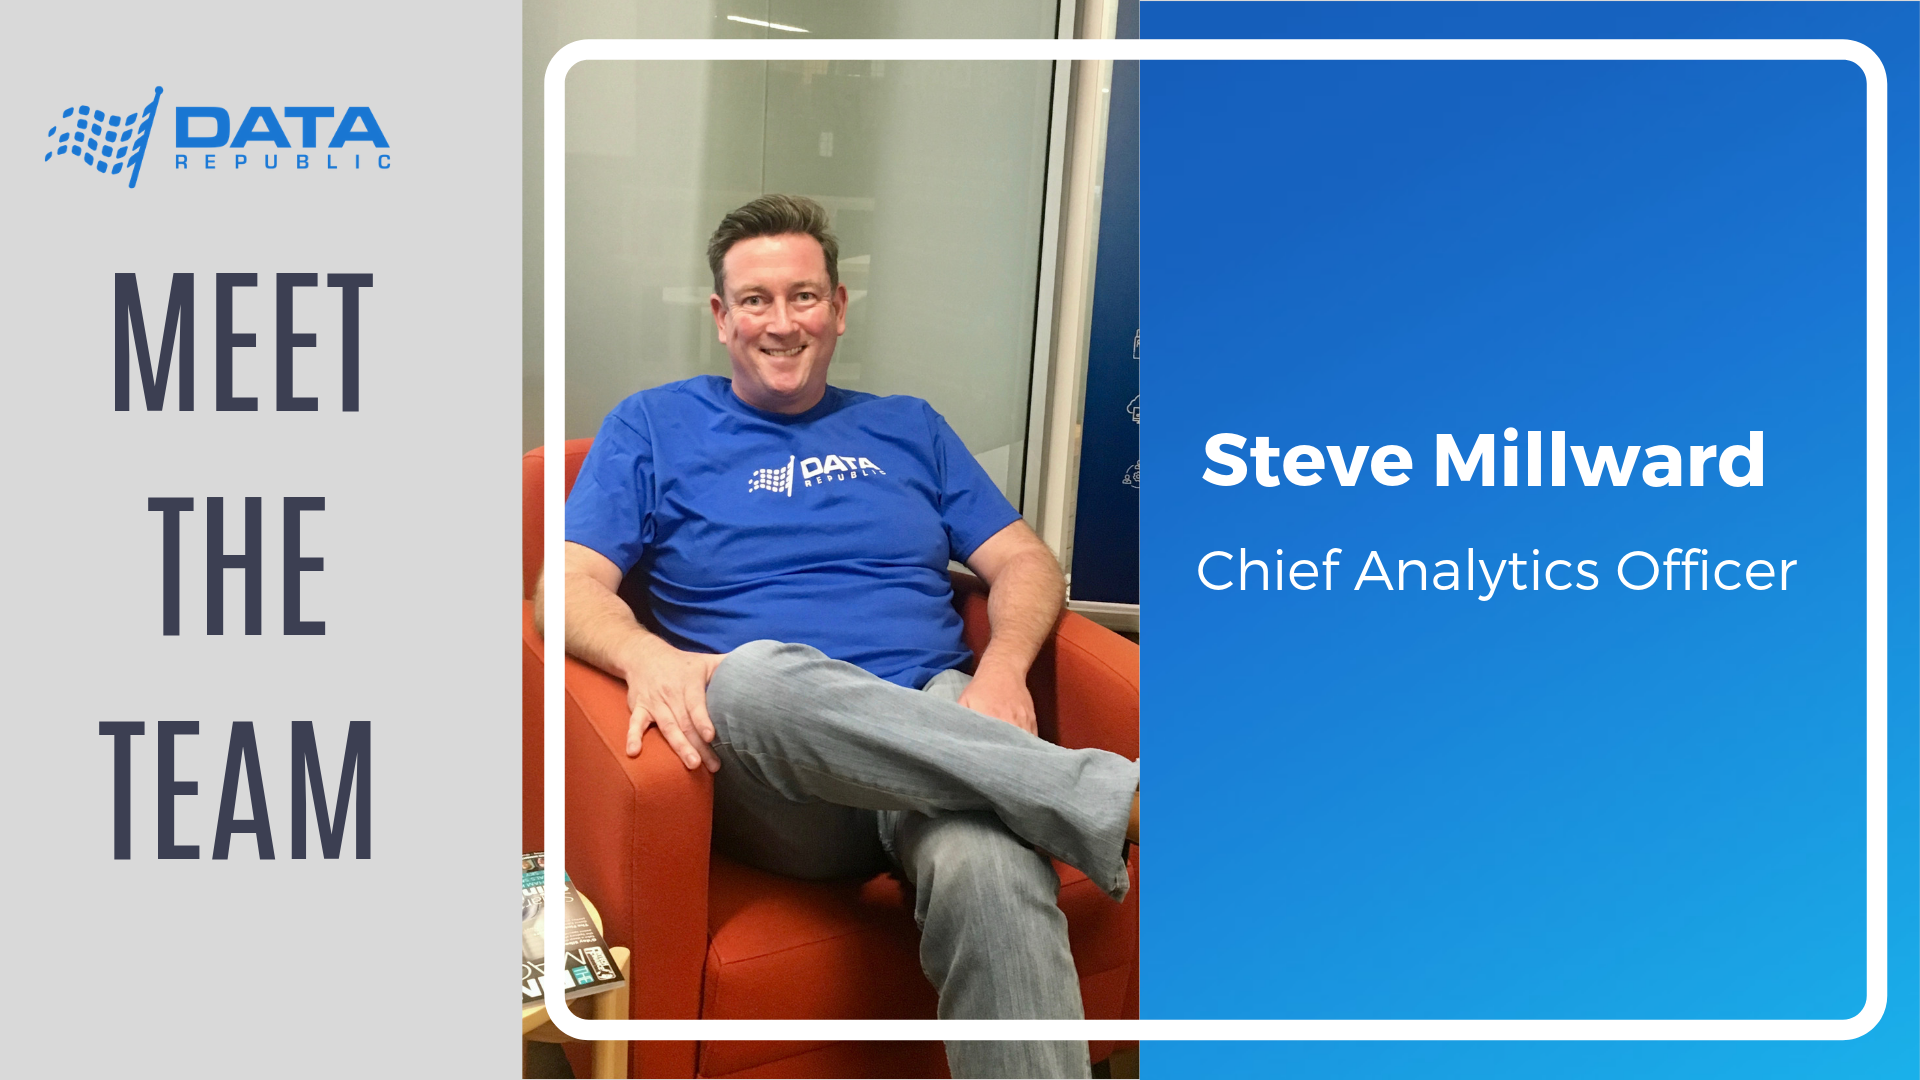 meet-the-team-steve-millward